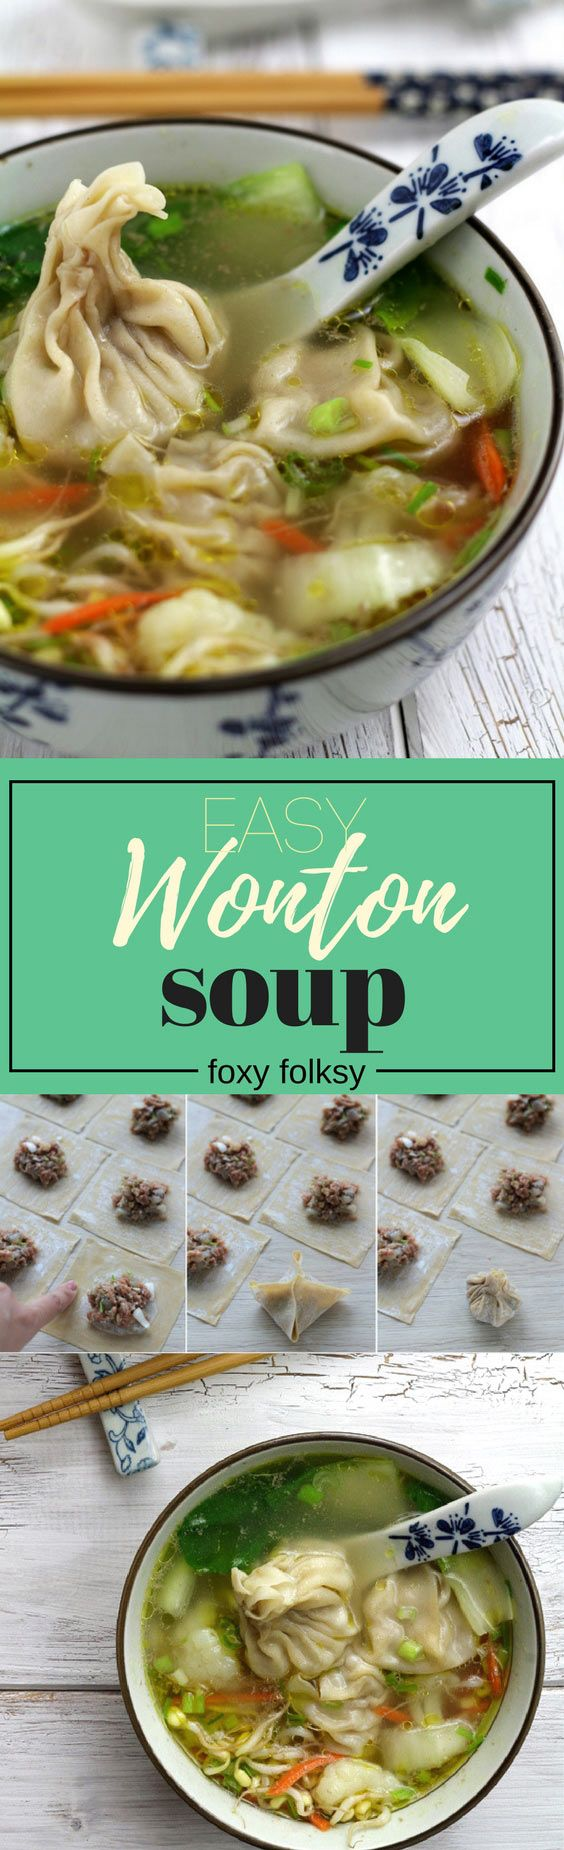 Try this wonton soup easy recipe. Classic Chinese dumplings filled with minced pork and shrimps and soup loaded with vegetables to keep you fit and warm!